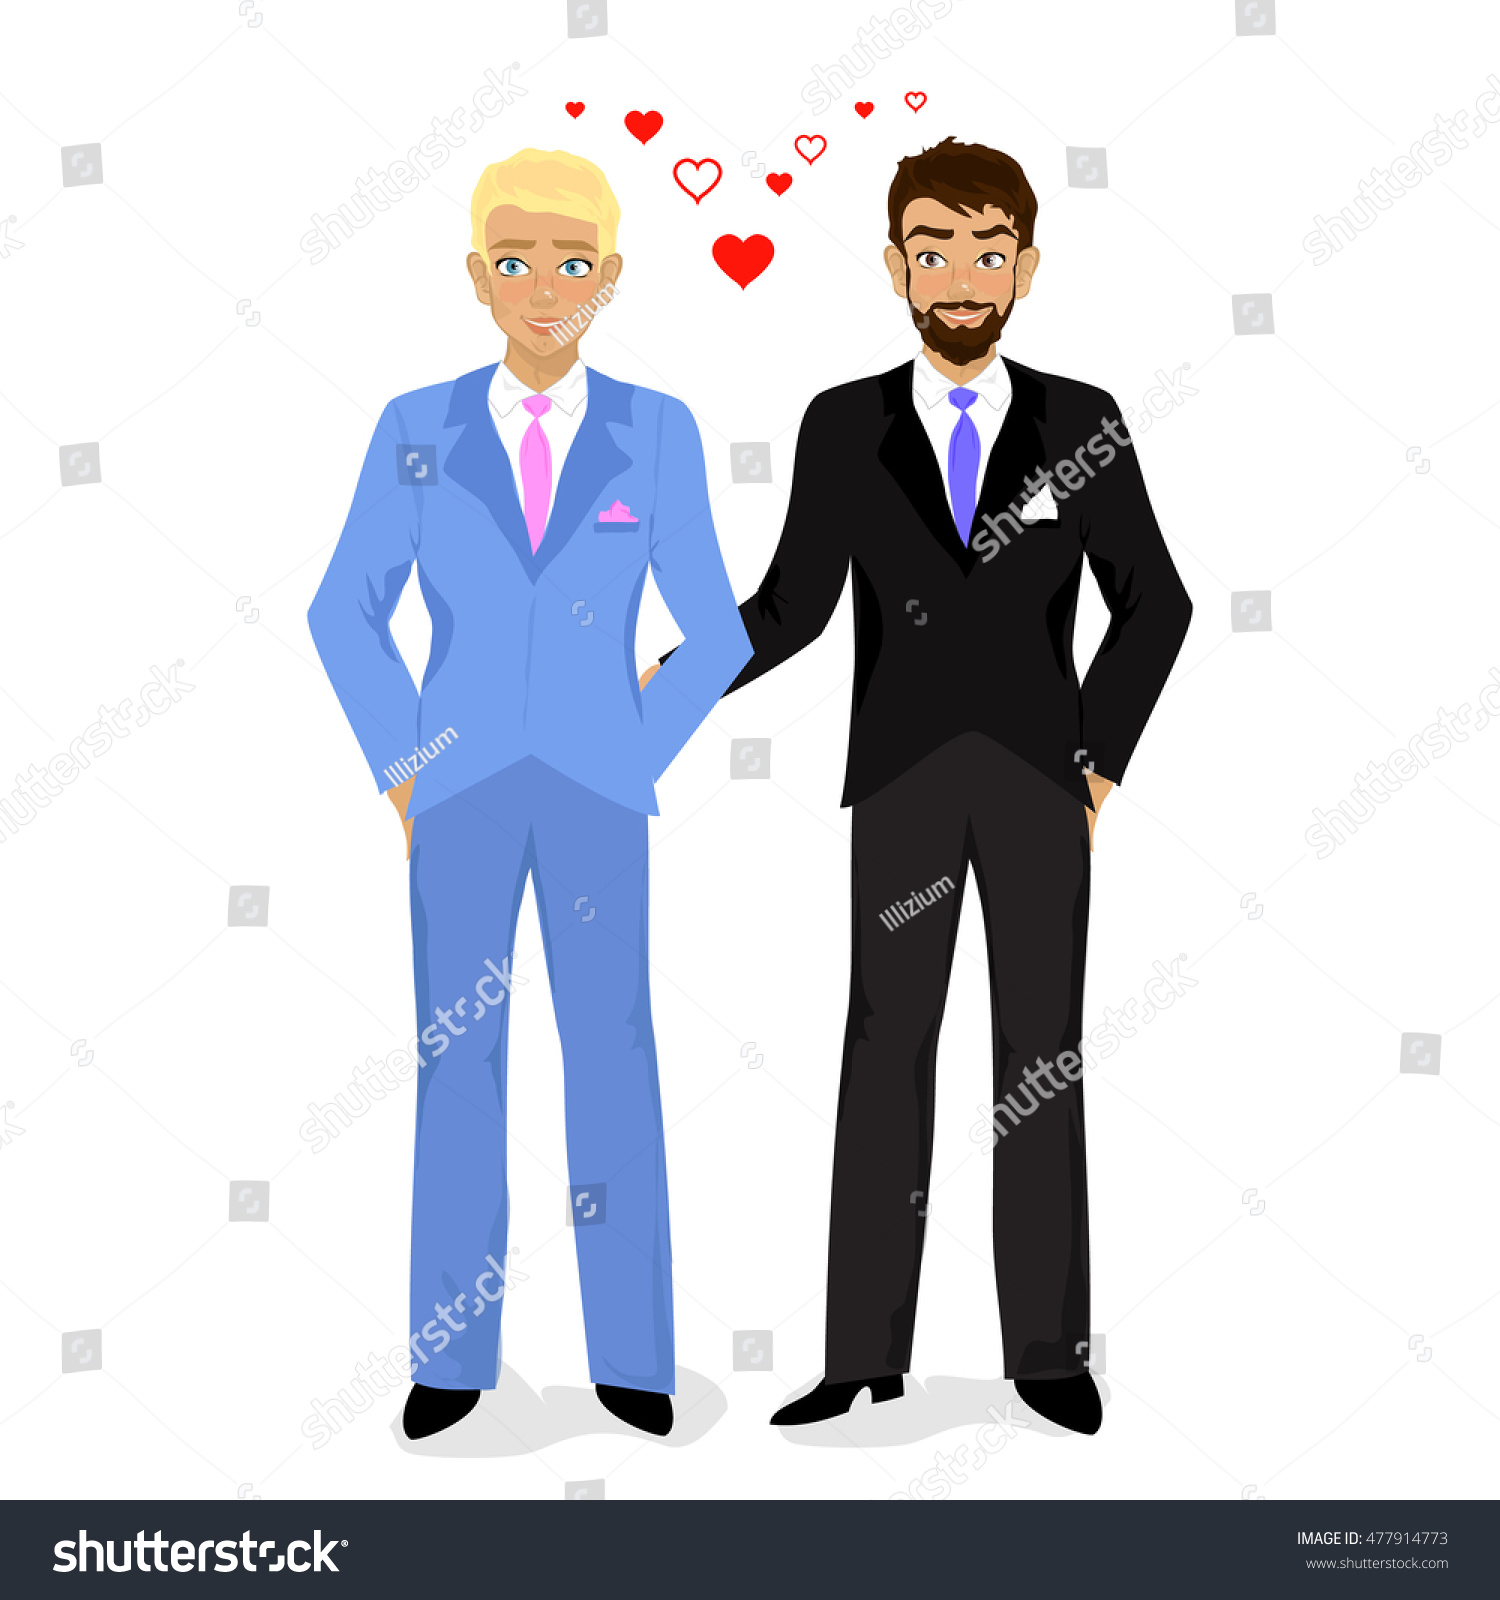 Cartoon Illustration Of Happy Gay Wedding Couple On White Background Just Married Couple Vector